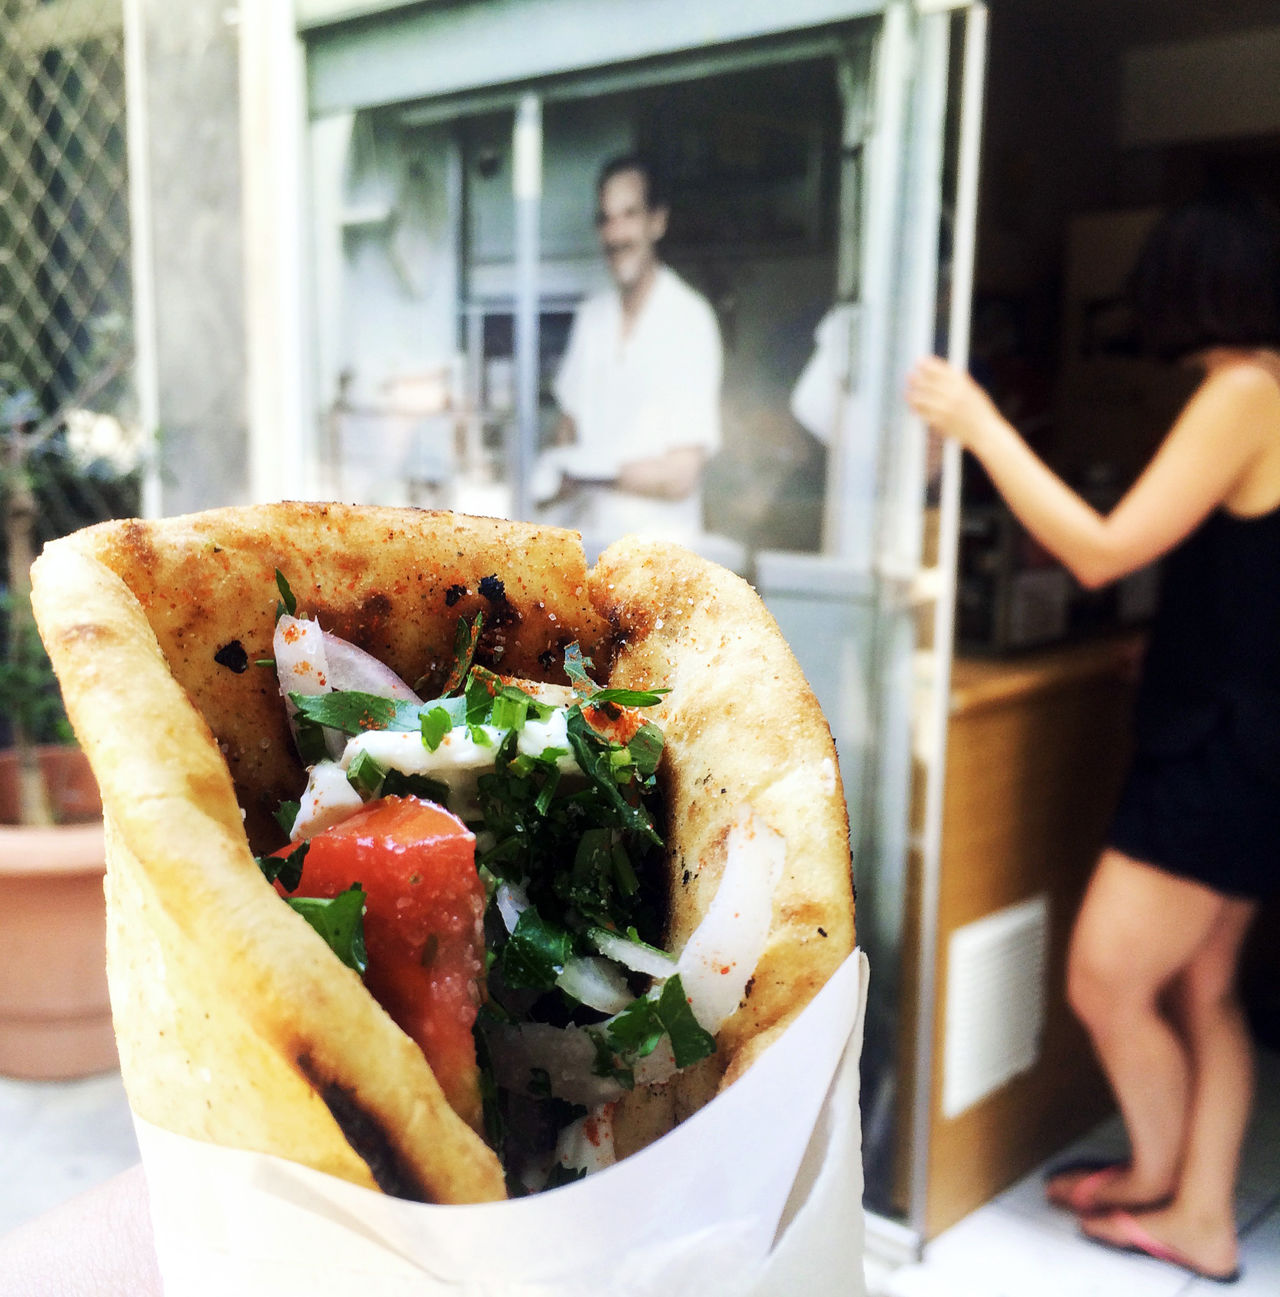 """Gyros Pitta"" in Athens Athens Bread Eating Focus On Foreground Food Food And Drink Freshness Garnish Greece Greek Food Gyros Herbs Hungry Enjoy The New Normal Kebab Lamb Meal Mediterranean  Mediterranean Food Pitta Ready-to-eat Scrumptious Take Out Food Takeaway Temptation"